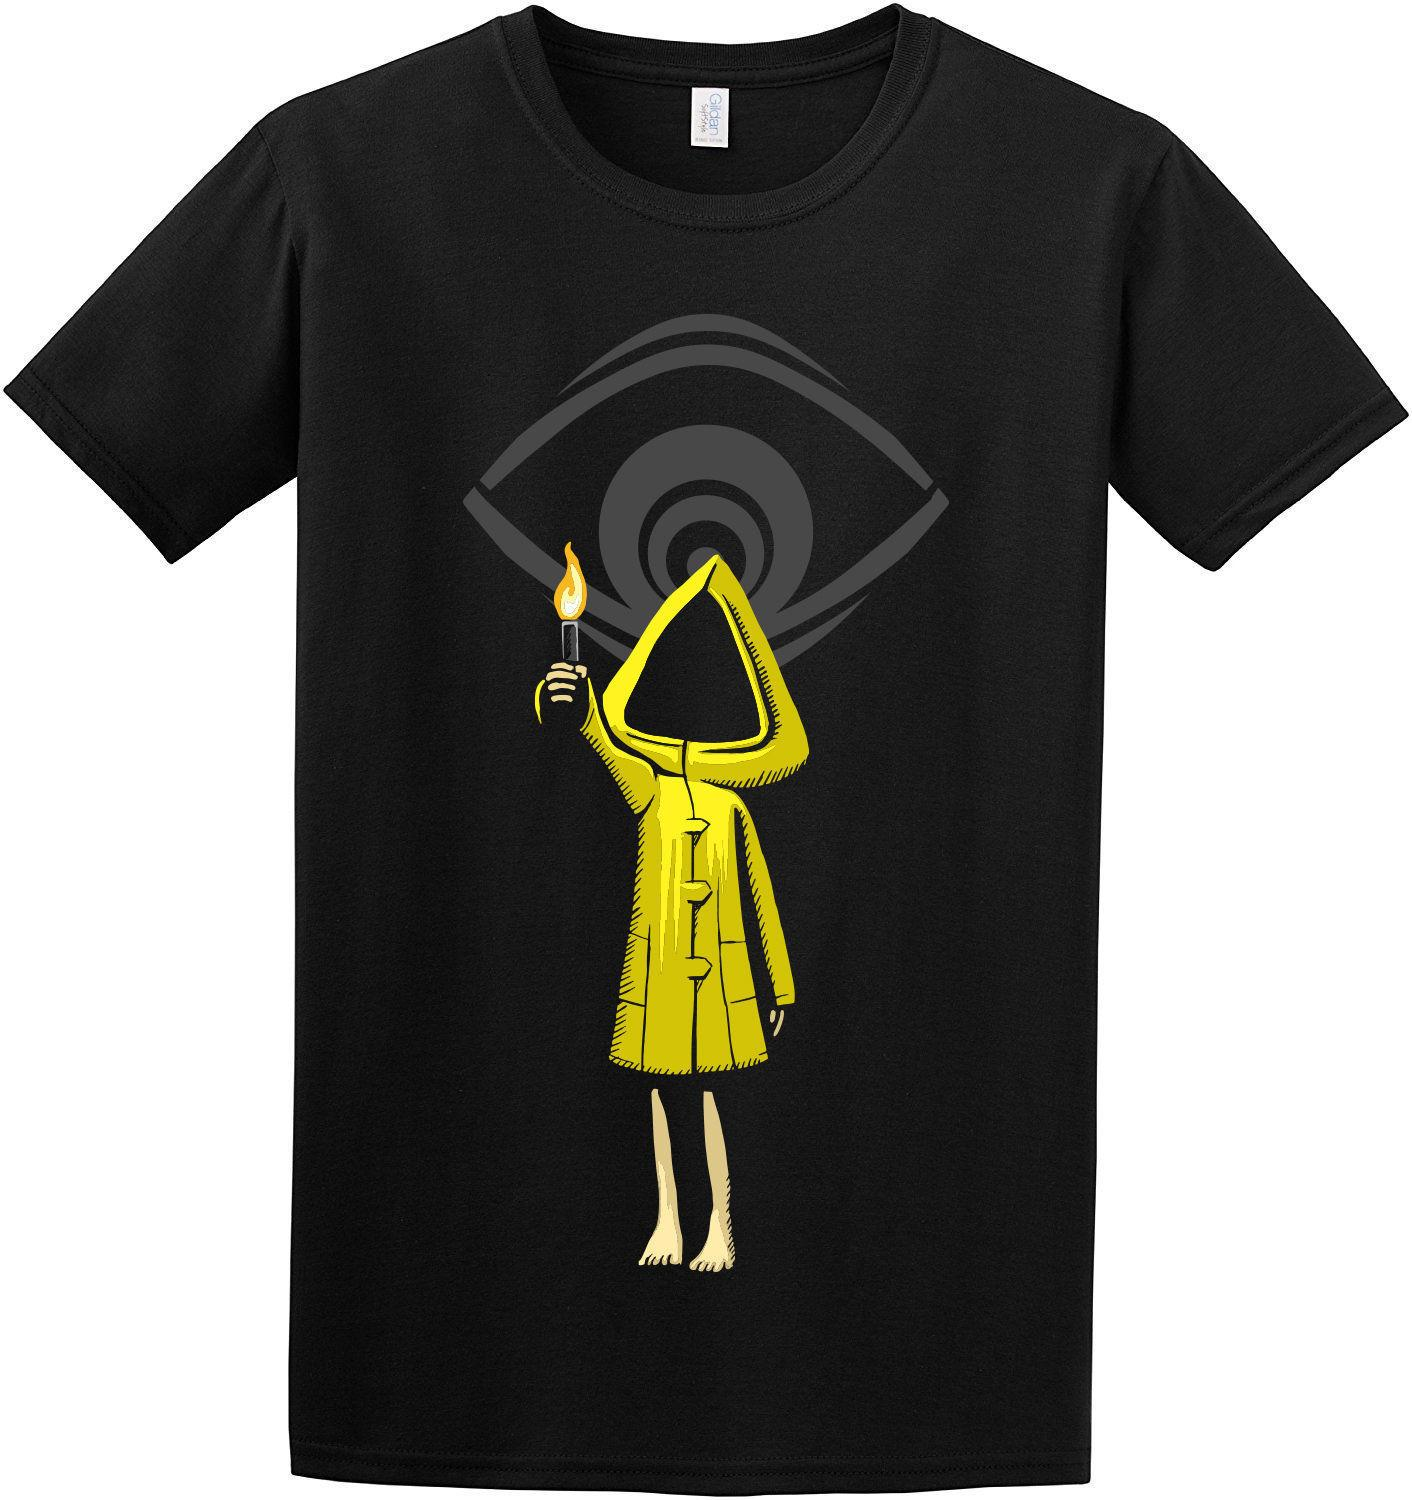 Limited Little Nightmares Six Maw Cool Creepy Design Camiseta negra Talla S-5XL